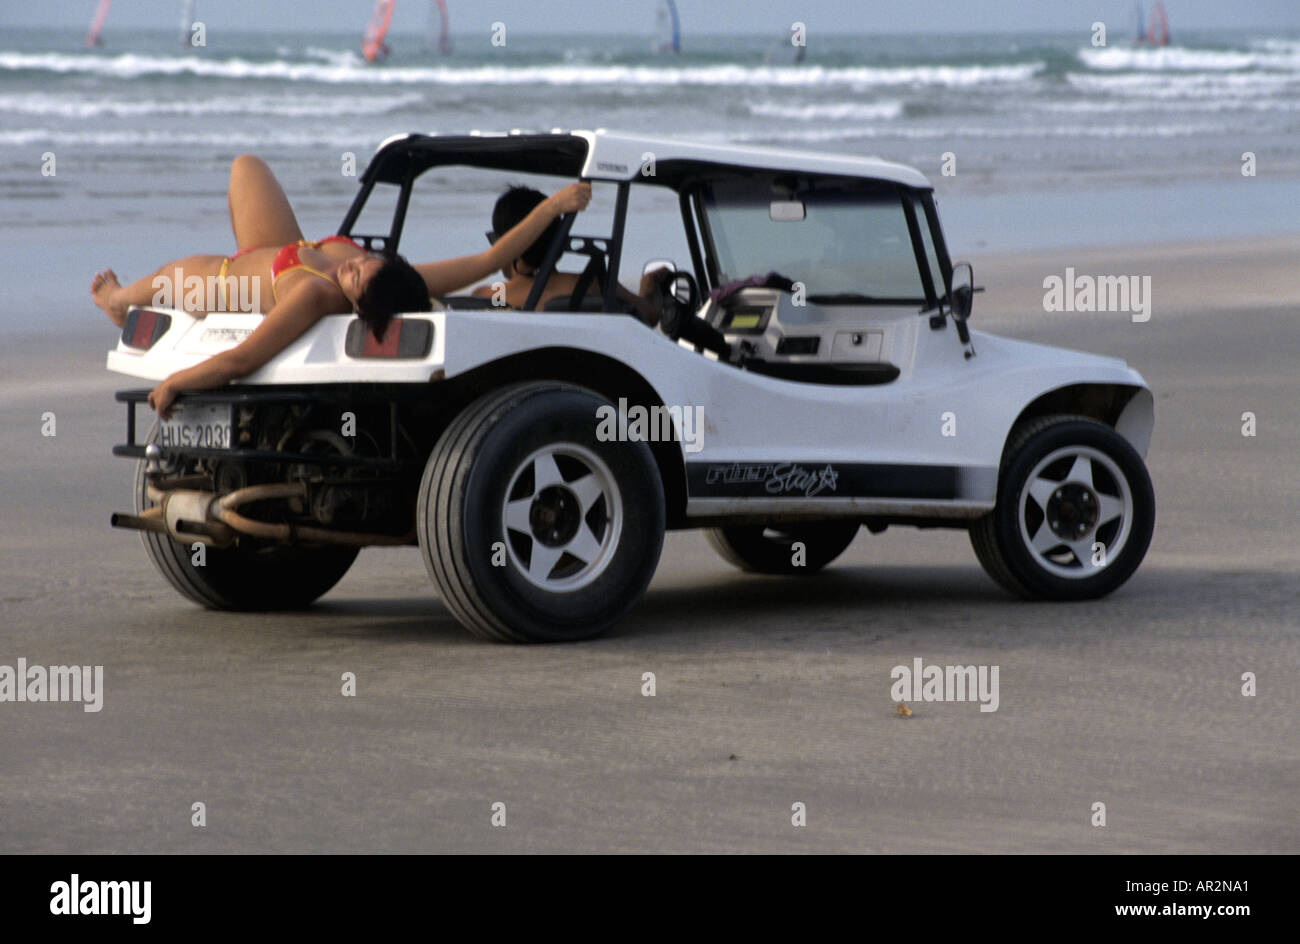 Beach Buggy Vw >> Brazilian sun worshipper lounging on beach buggy, Jericoacoara Stock Photo: 5197216 - Alamy